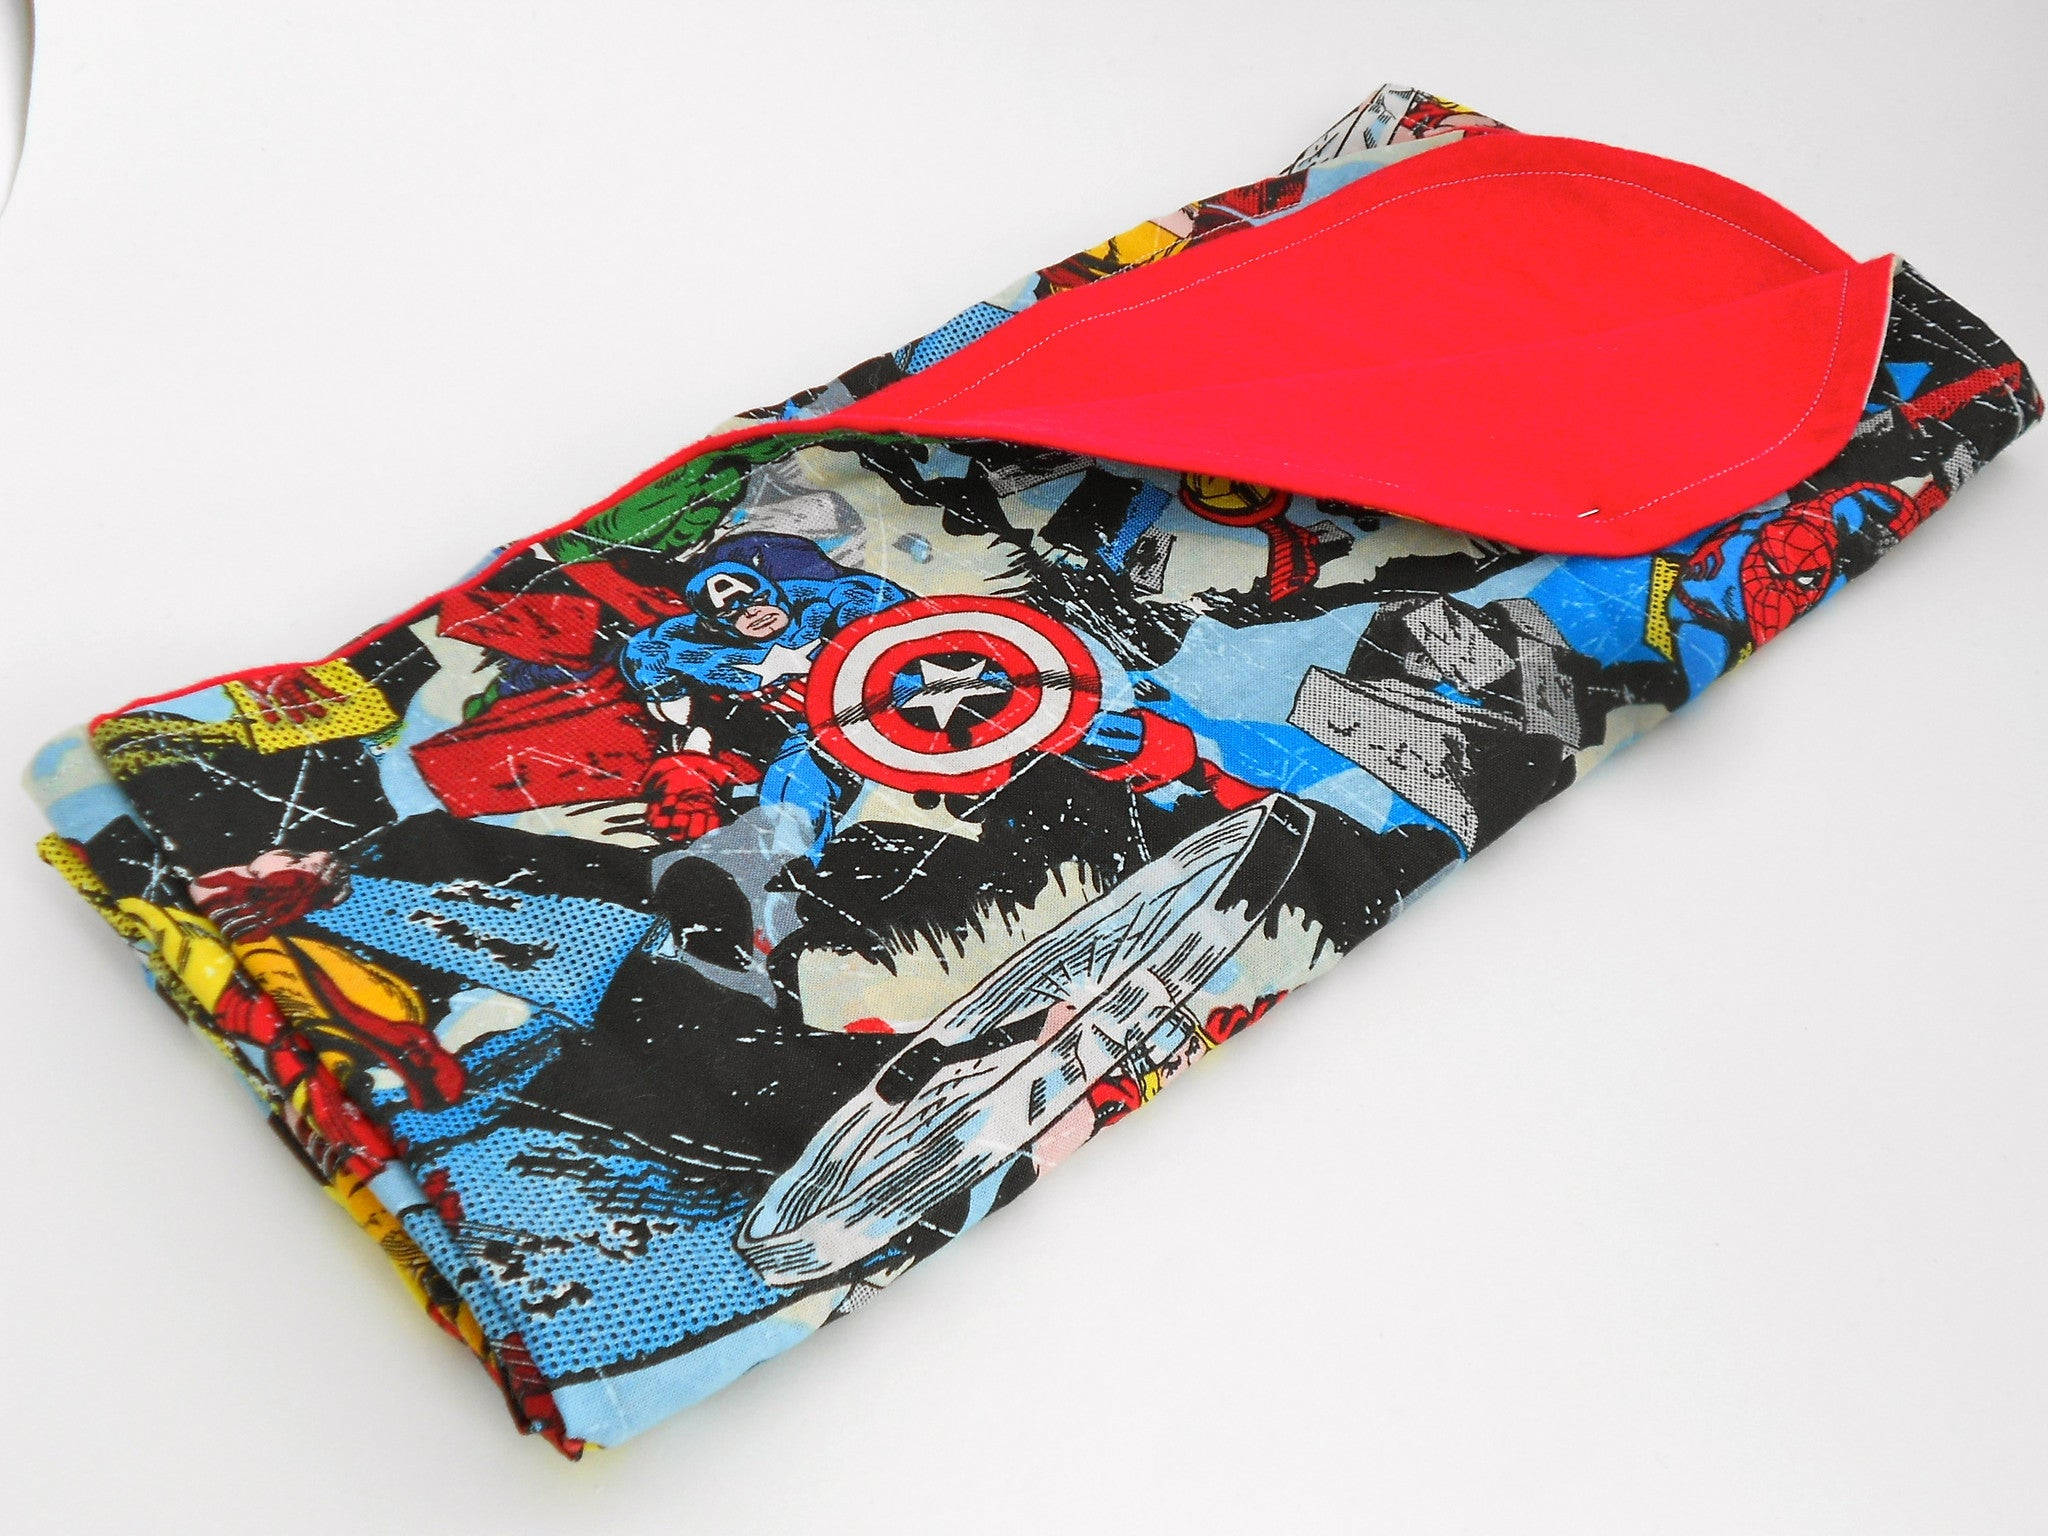 Marvel Avengers Smash Blanket